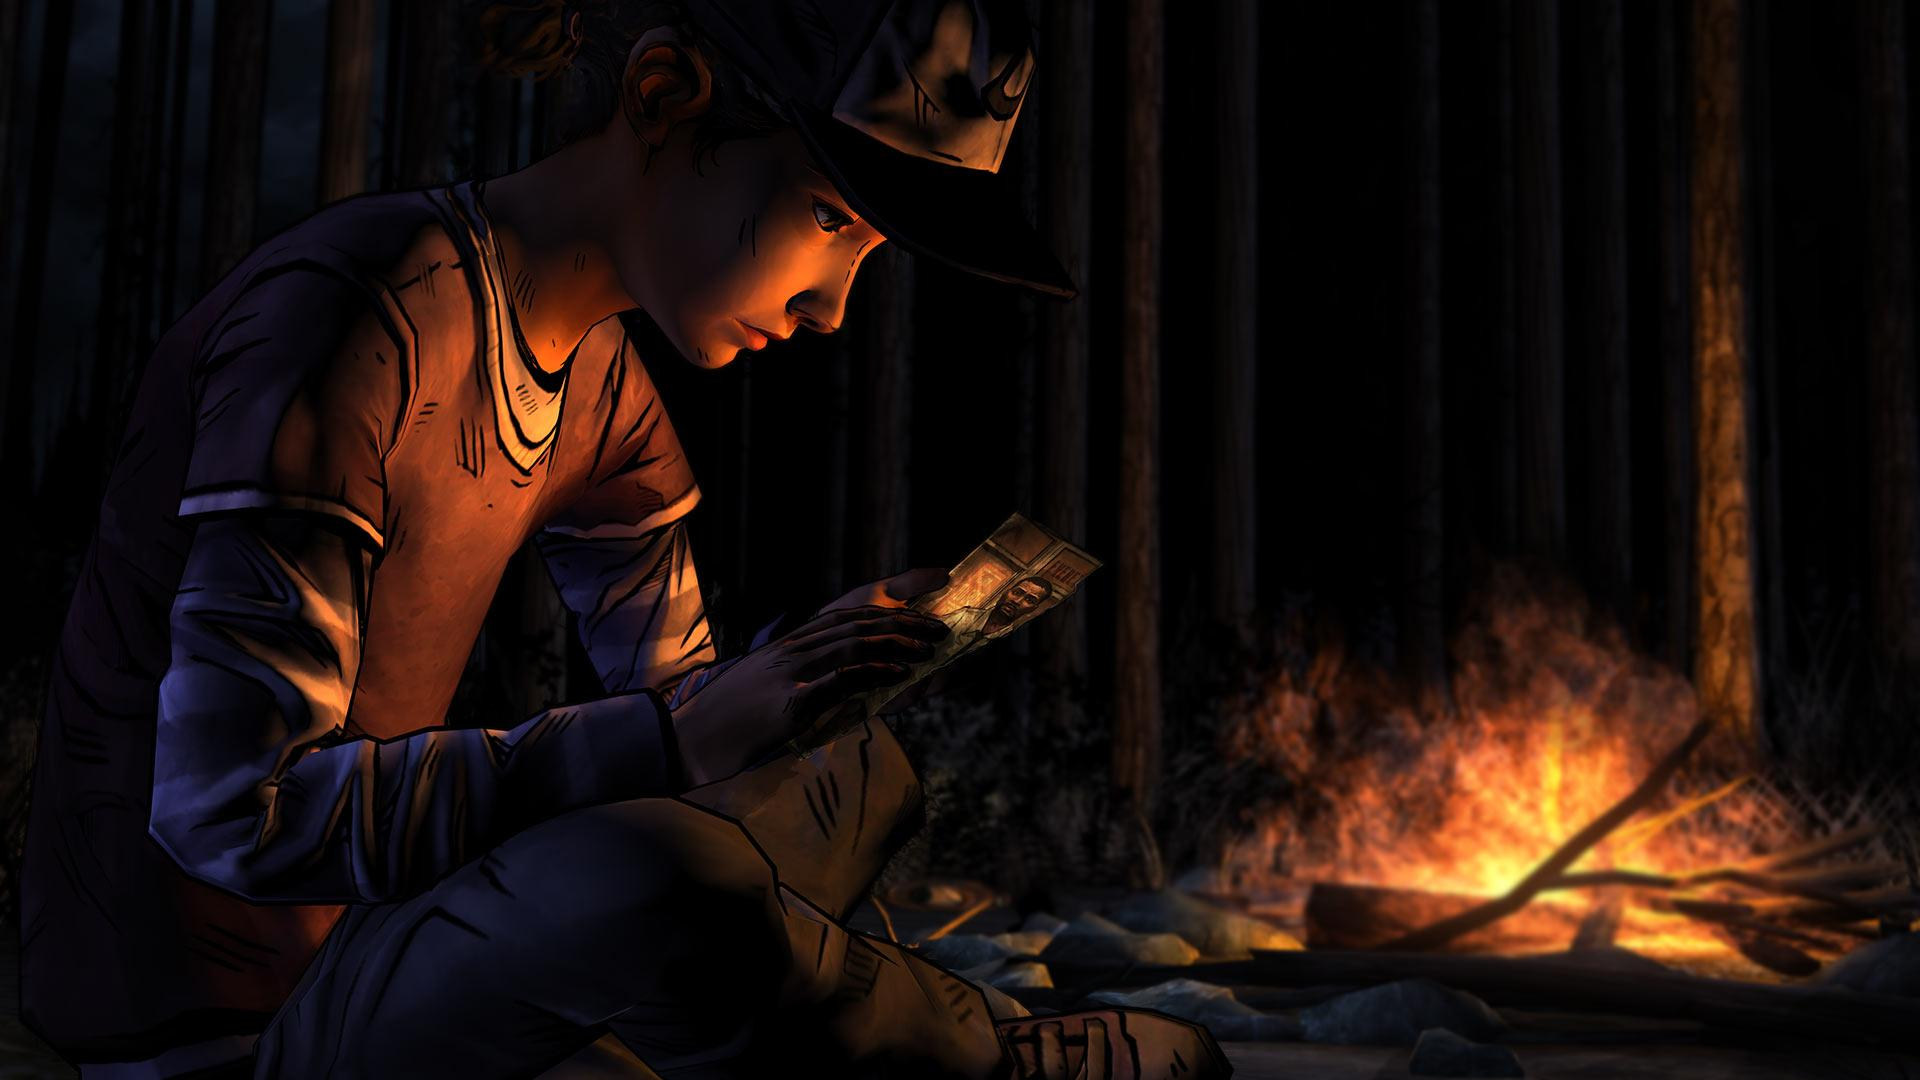 Telltale Games officially shutting down, only a skeleton crew remains